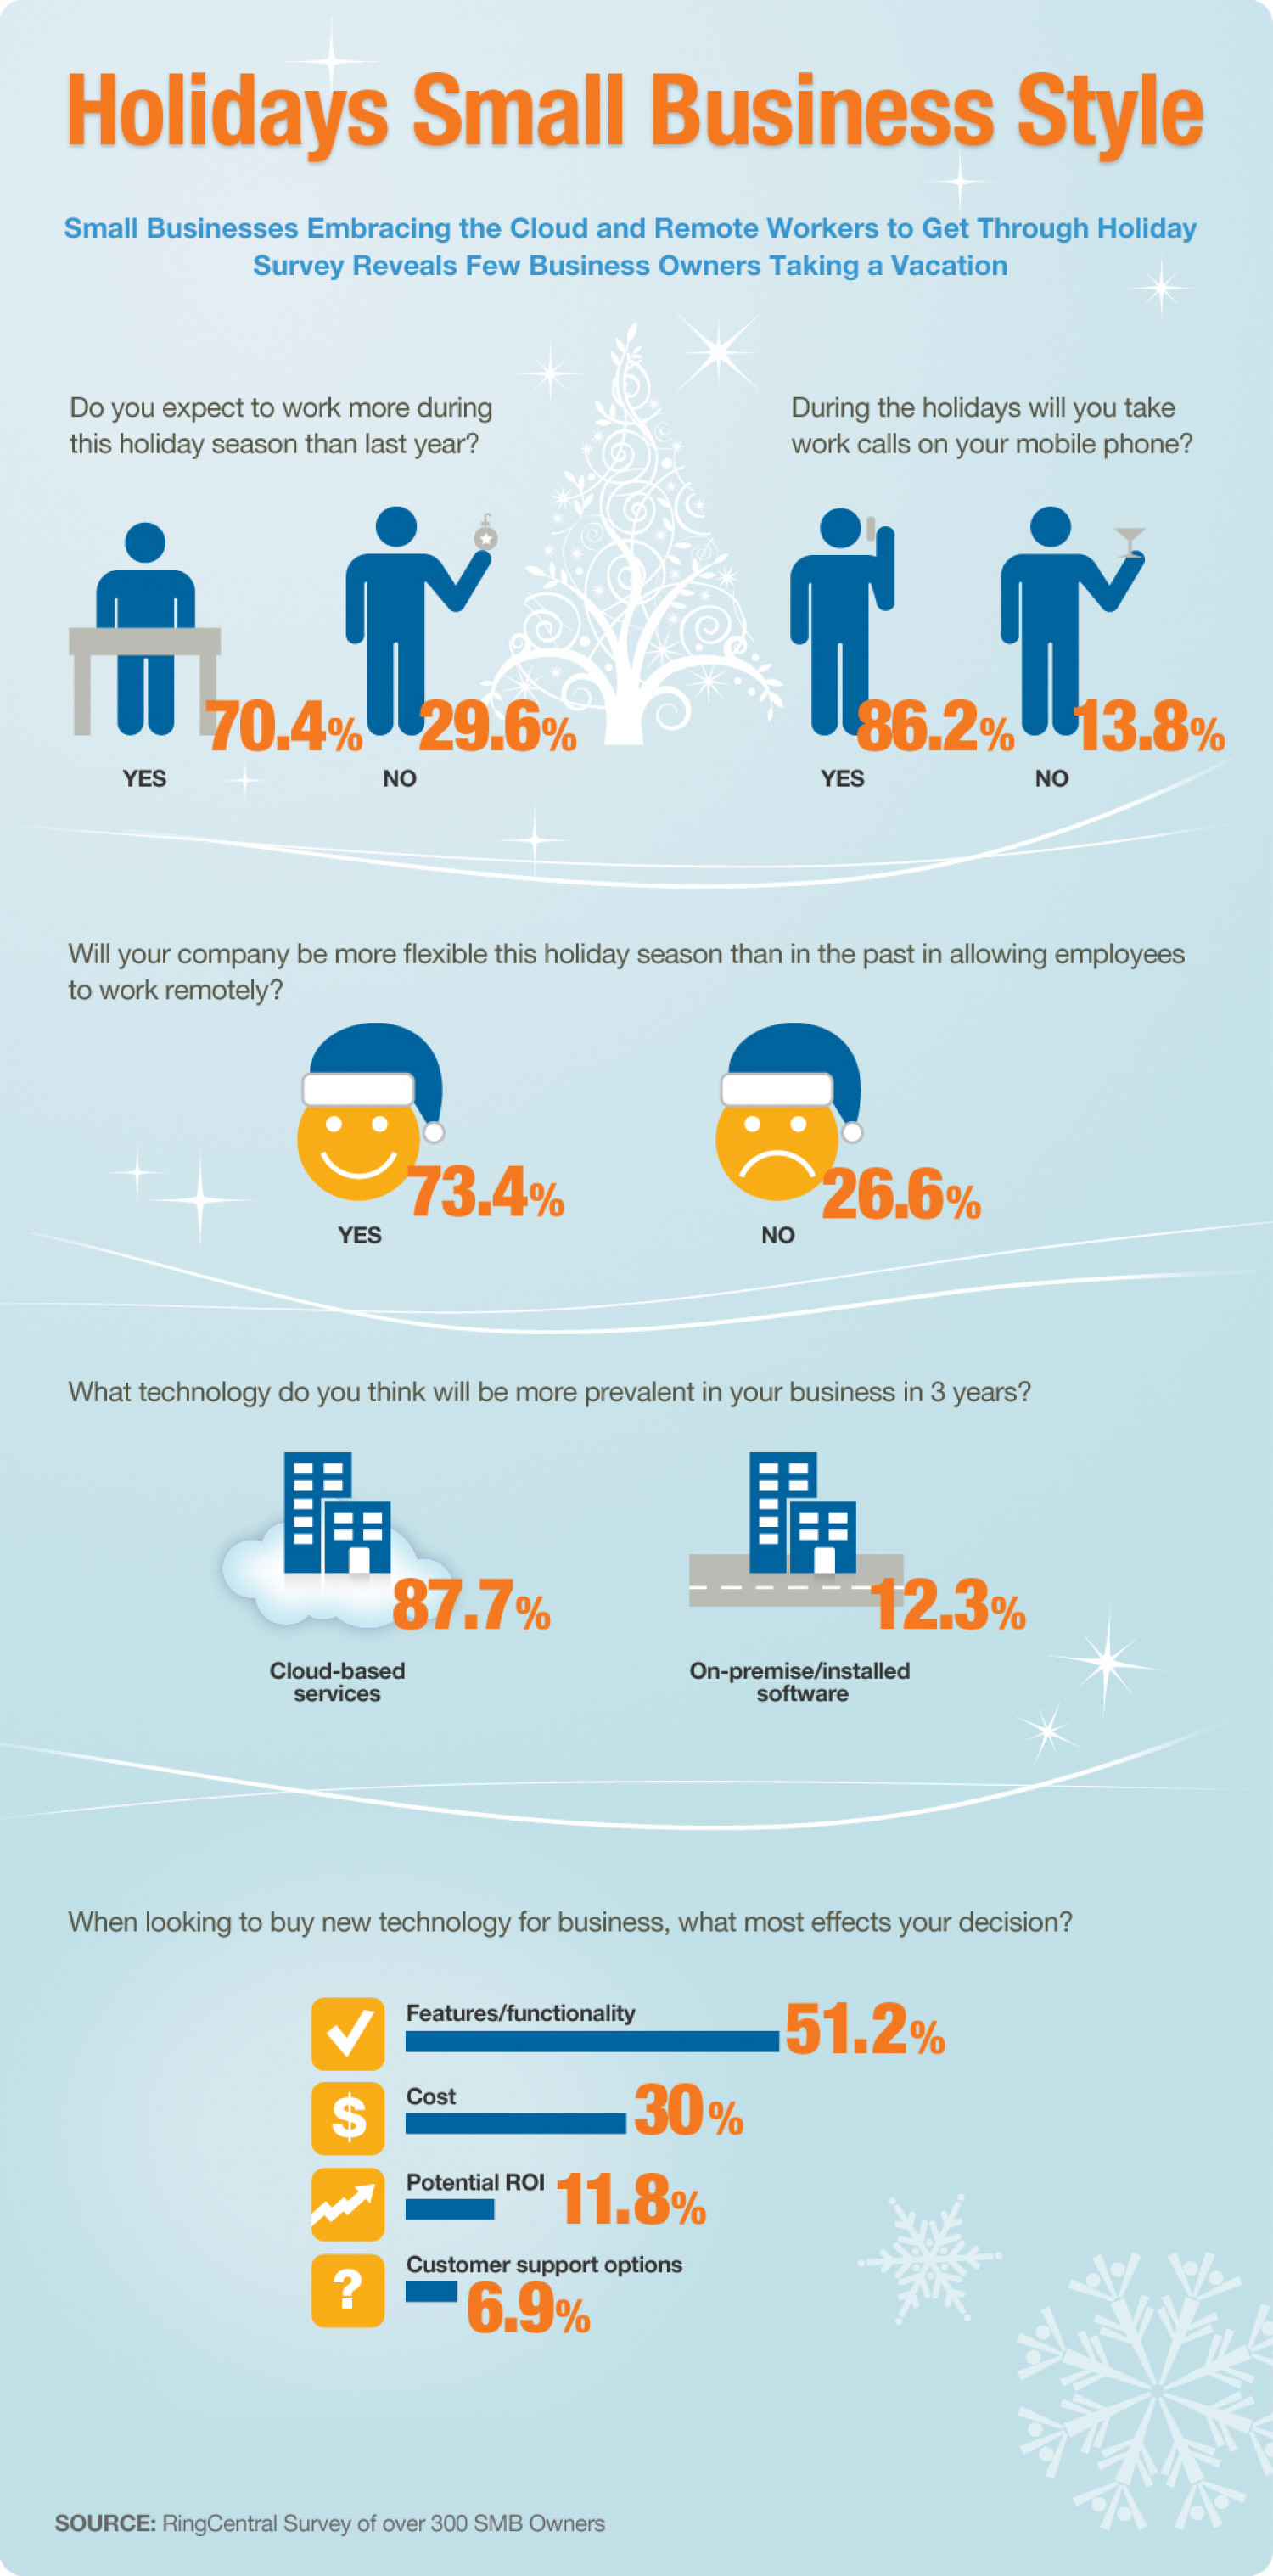 RingCentral Survey Reveals Small Business Owners Embracing a Remote Workforce and Cloud Technology to Get Through the Holidays Infographic